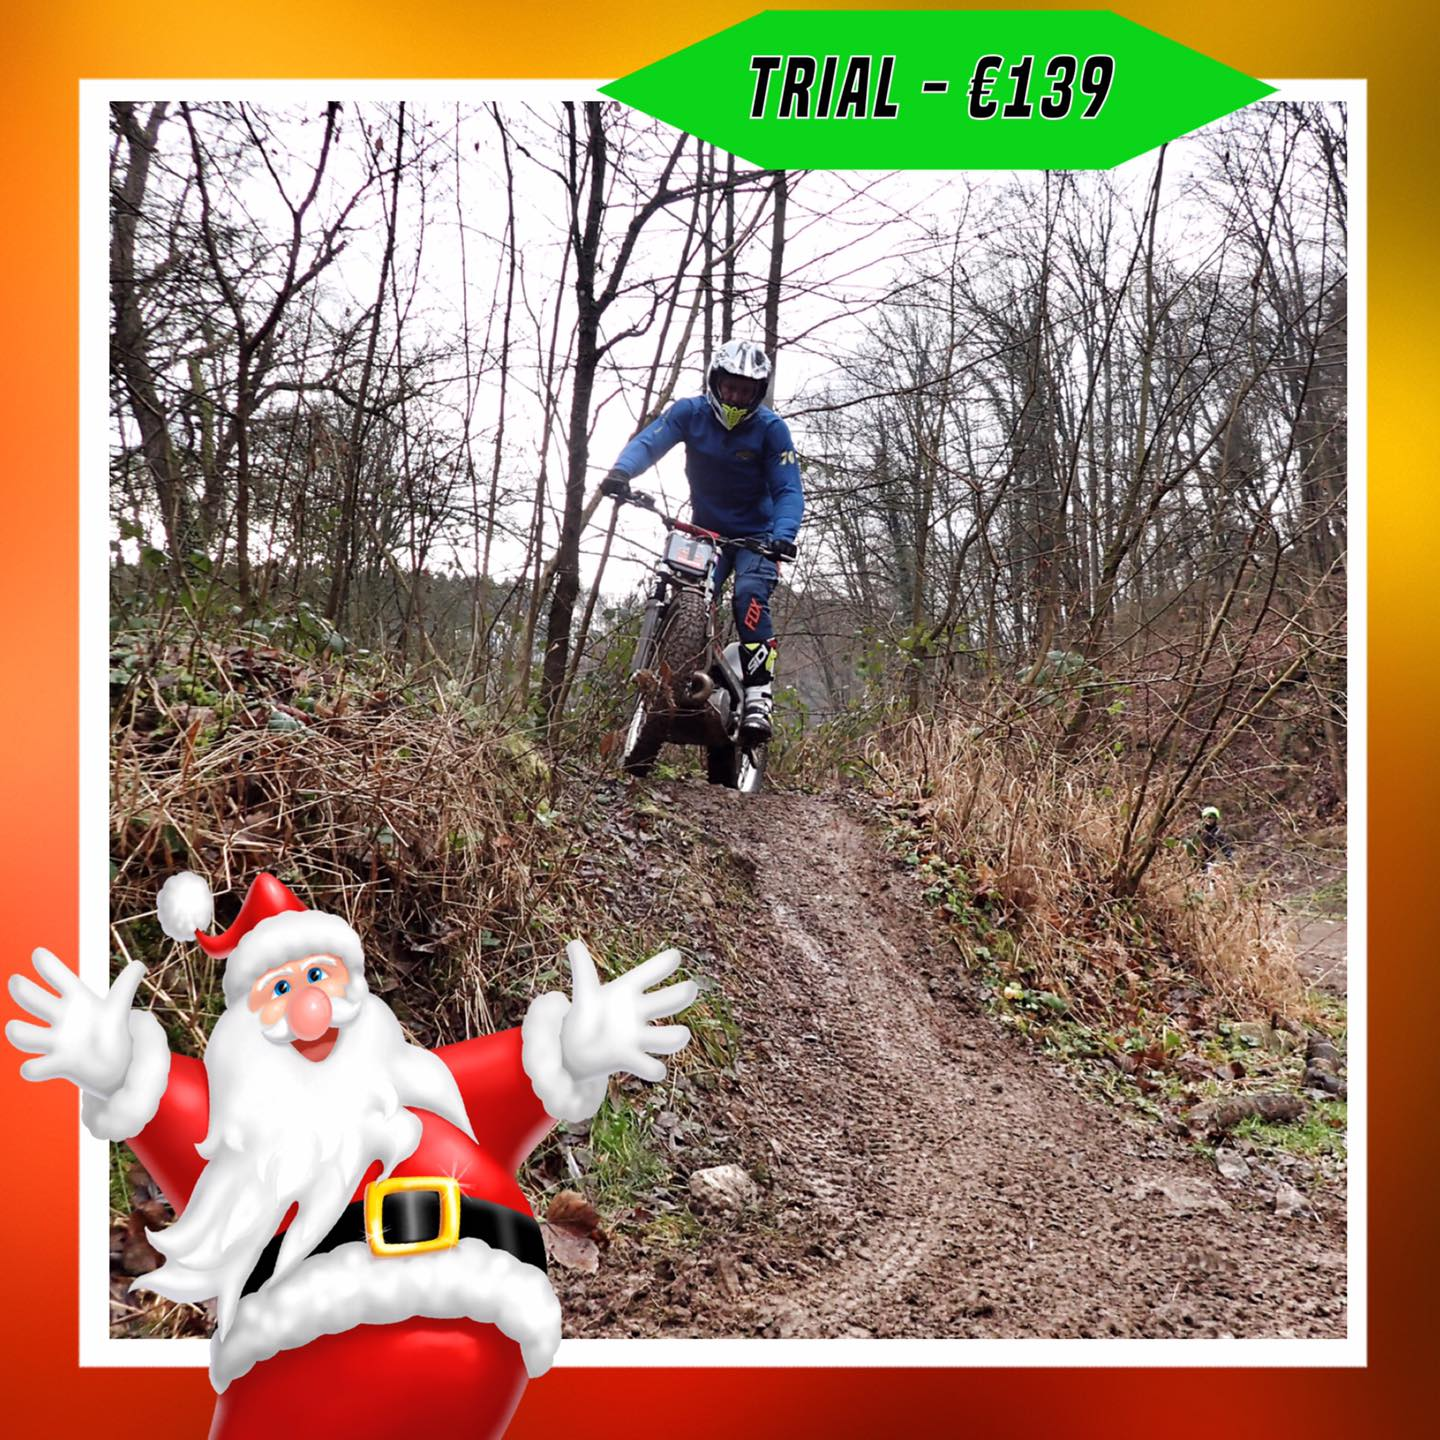 Kerst-initiaties Bilstain Endurofun 25